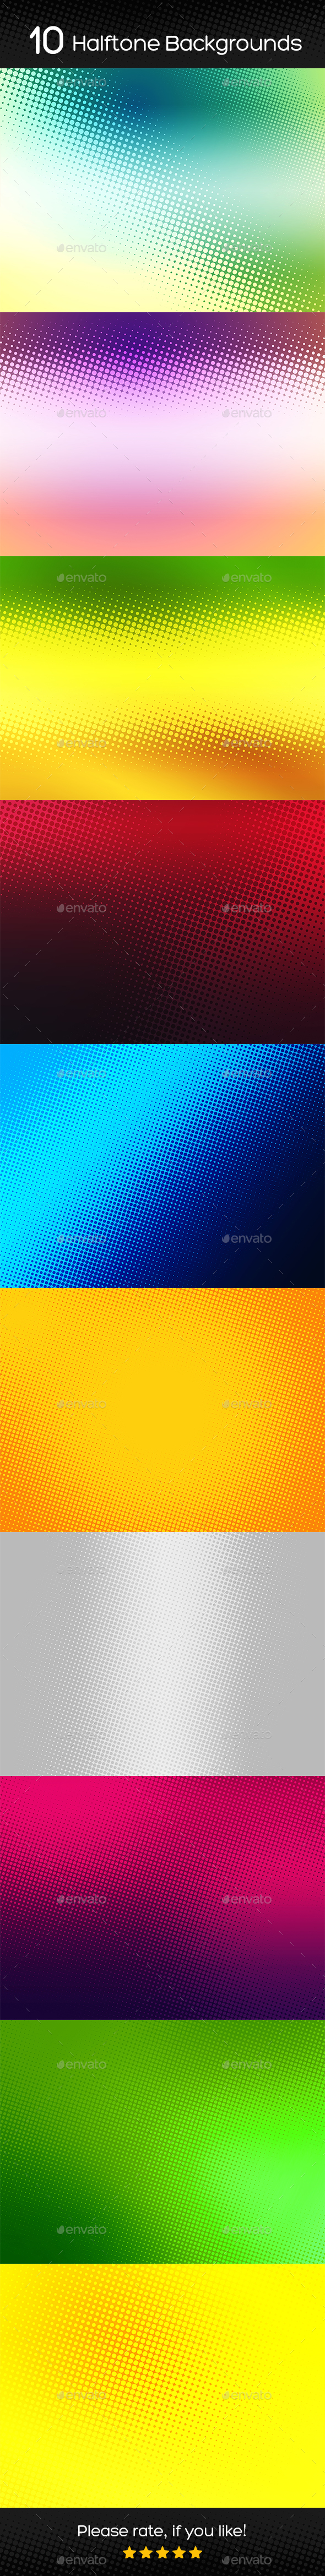 Halftone Backgrounds v2 - Abstract Backgrounds